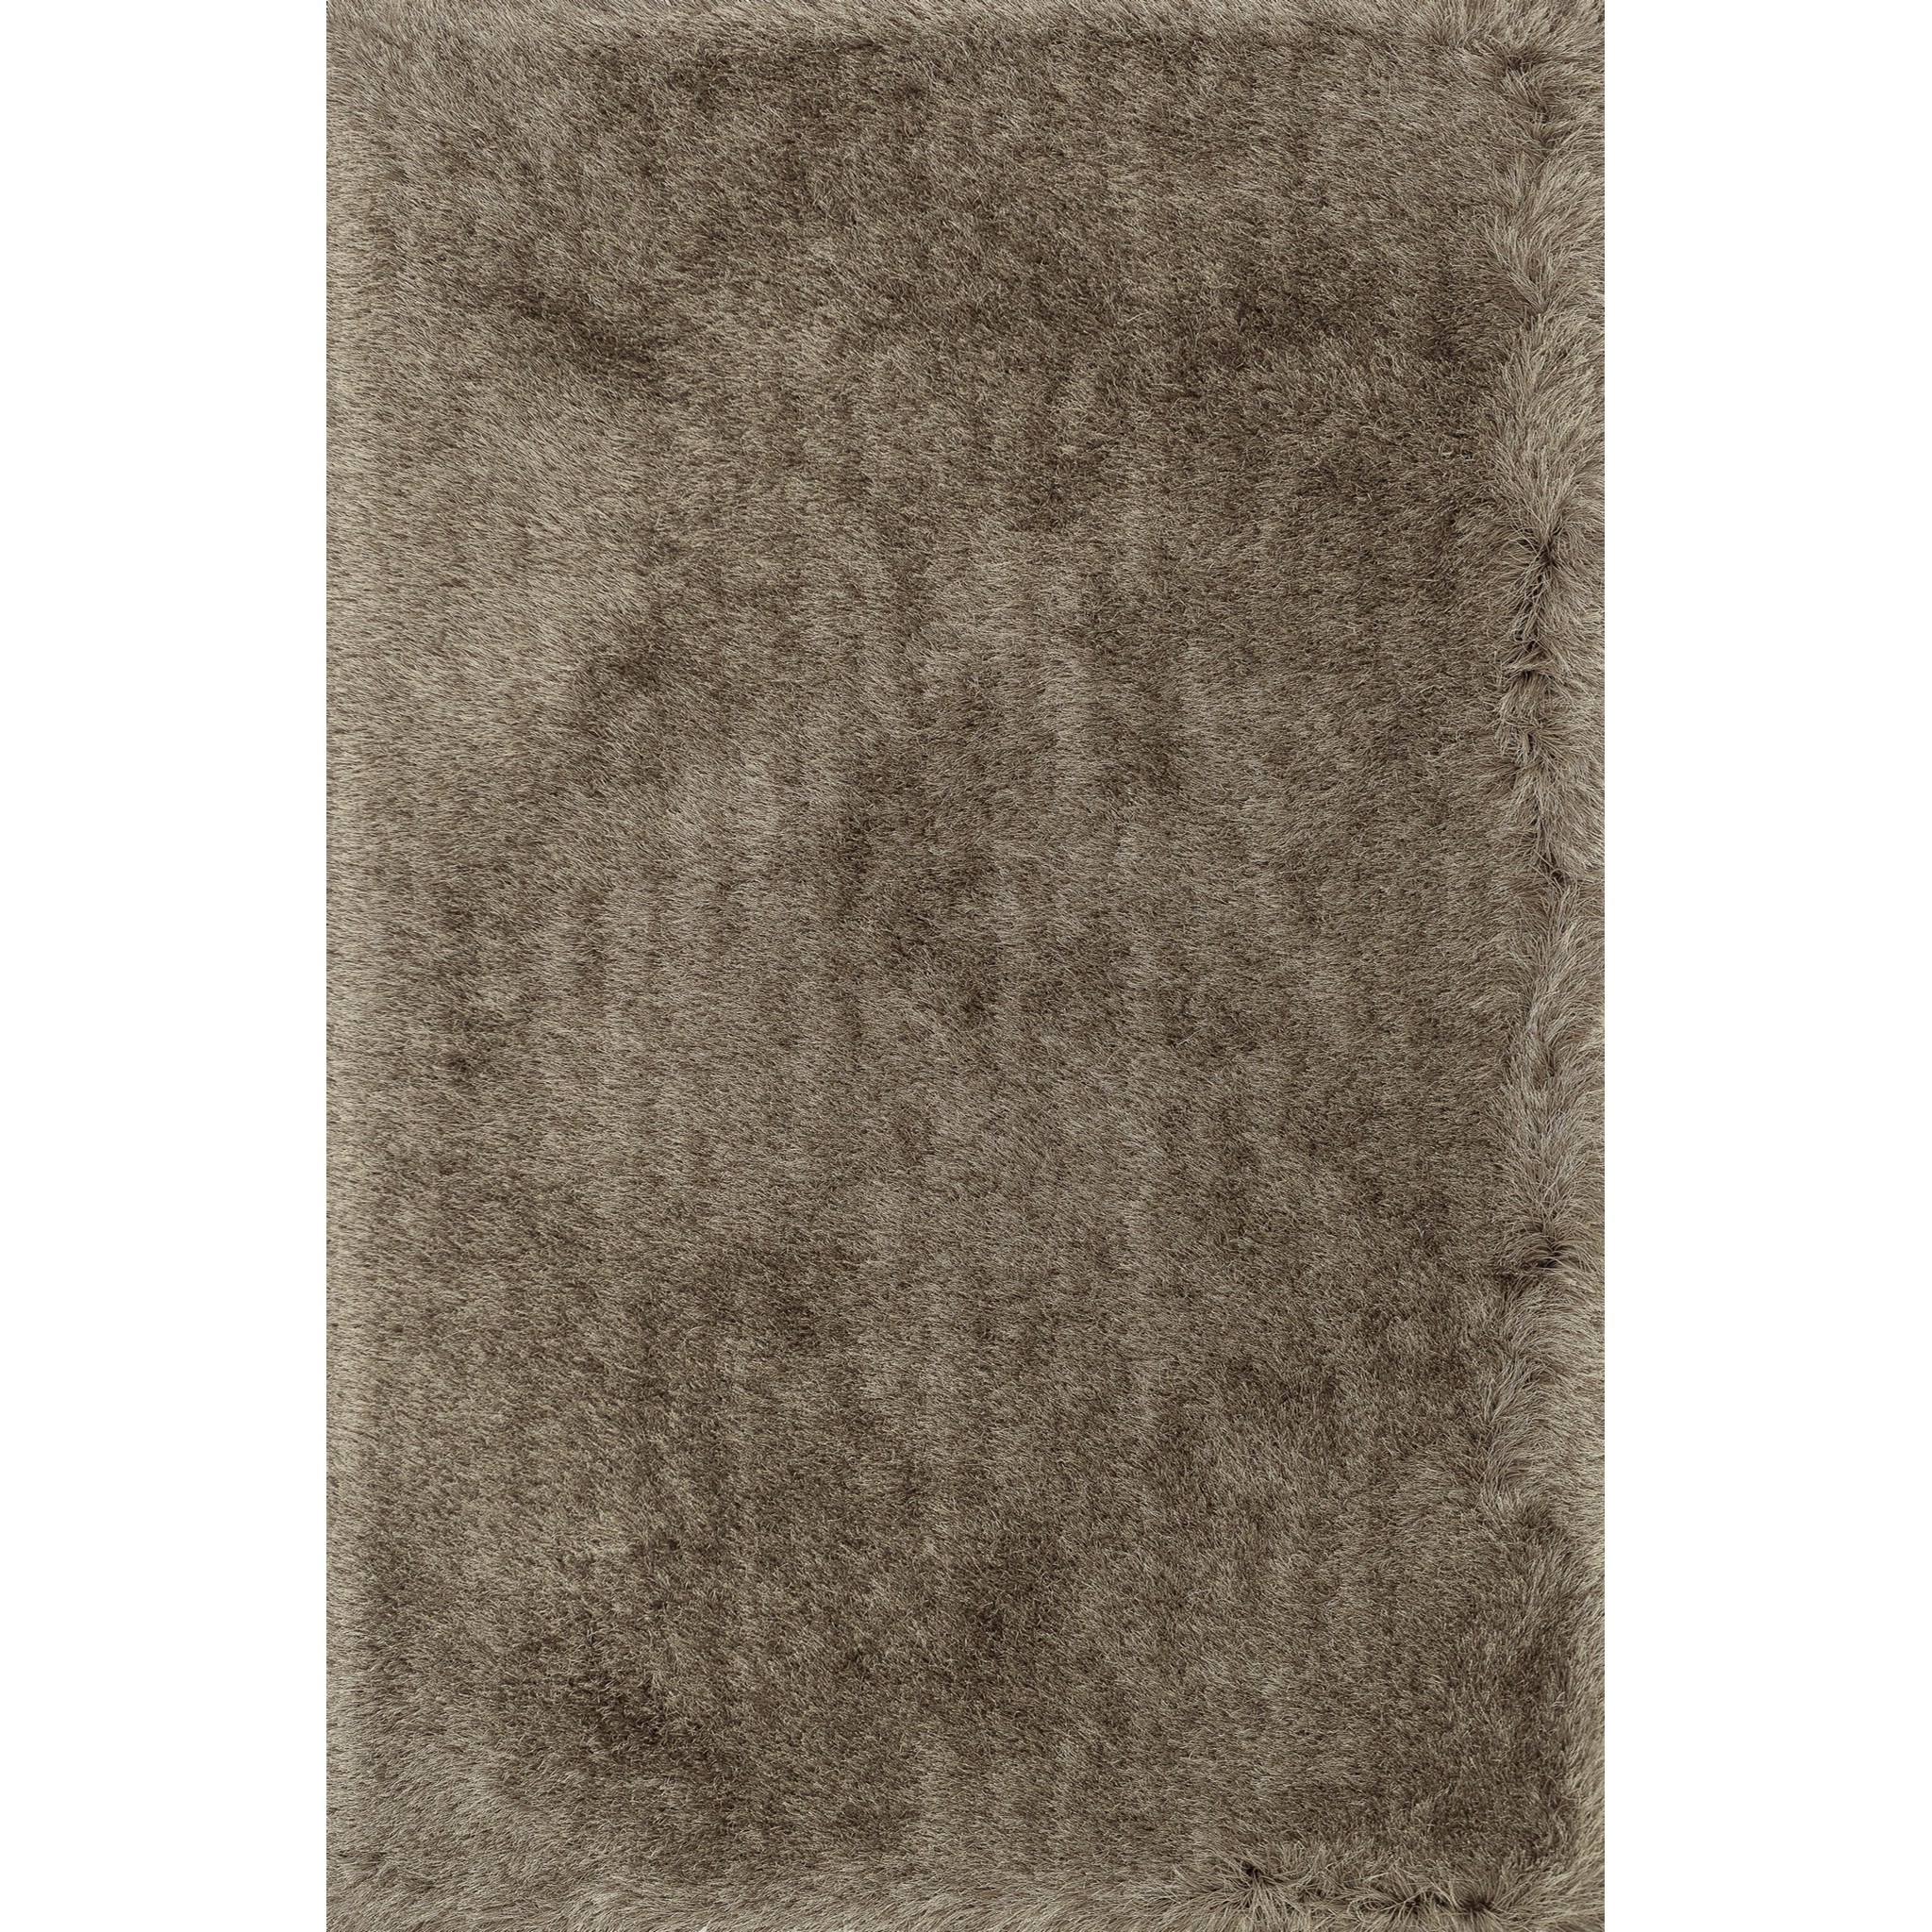 "Allure Shag 9'-3"" X 13' Area Rug by Loloi Rugs at Sprintz Furniture"